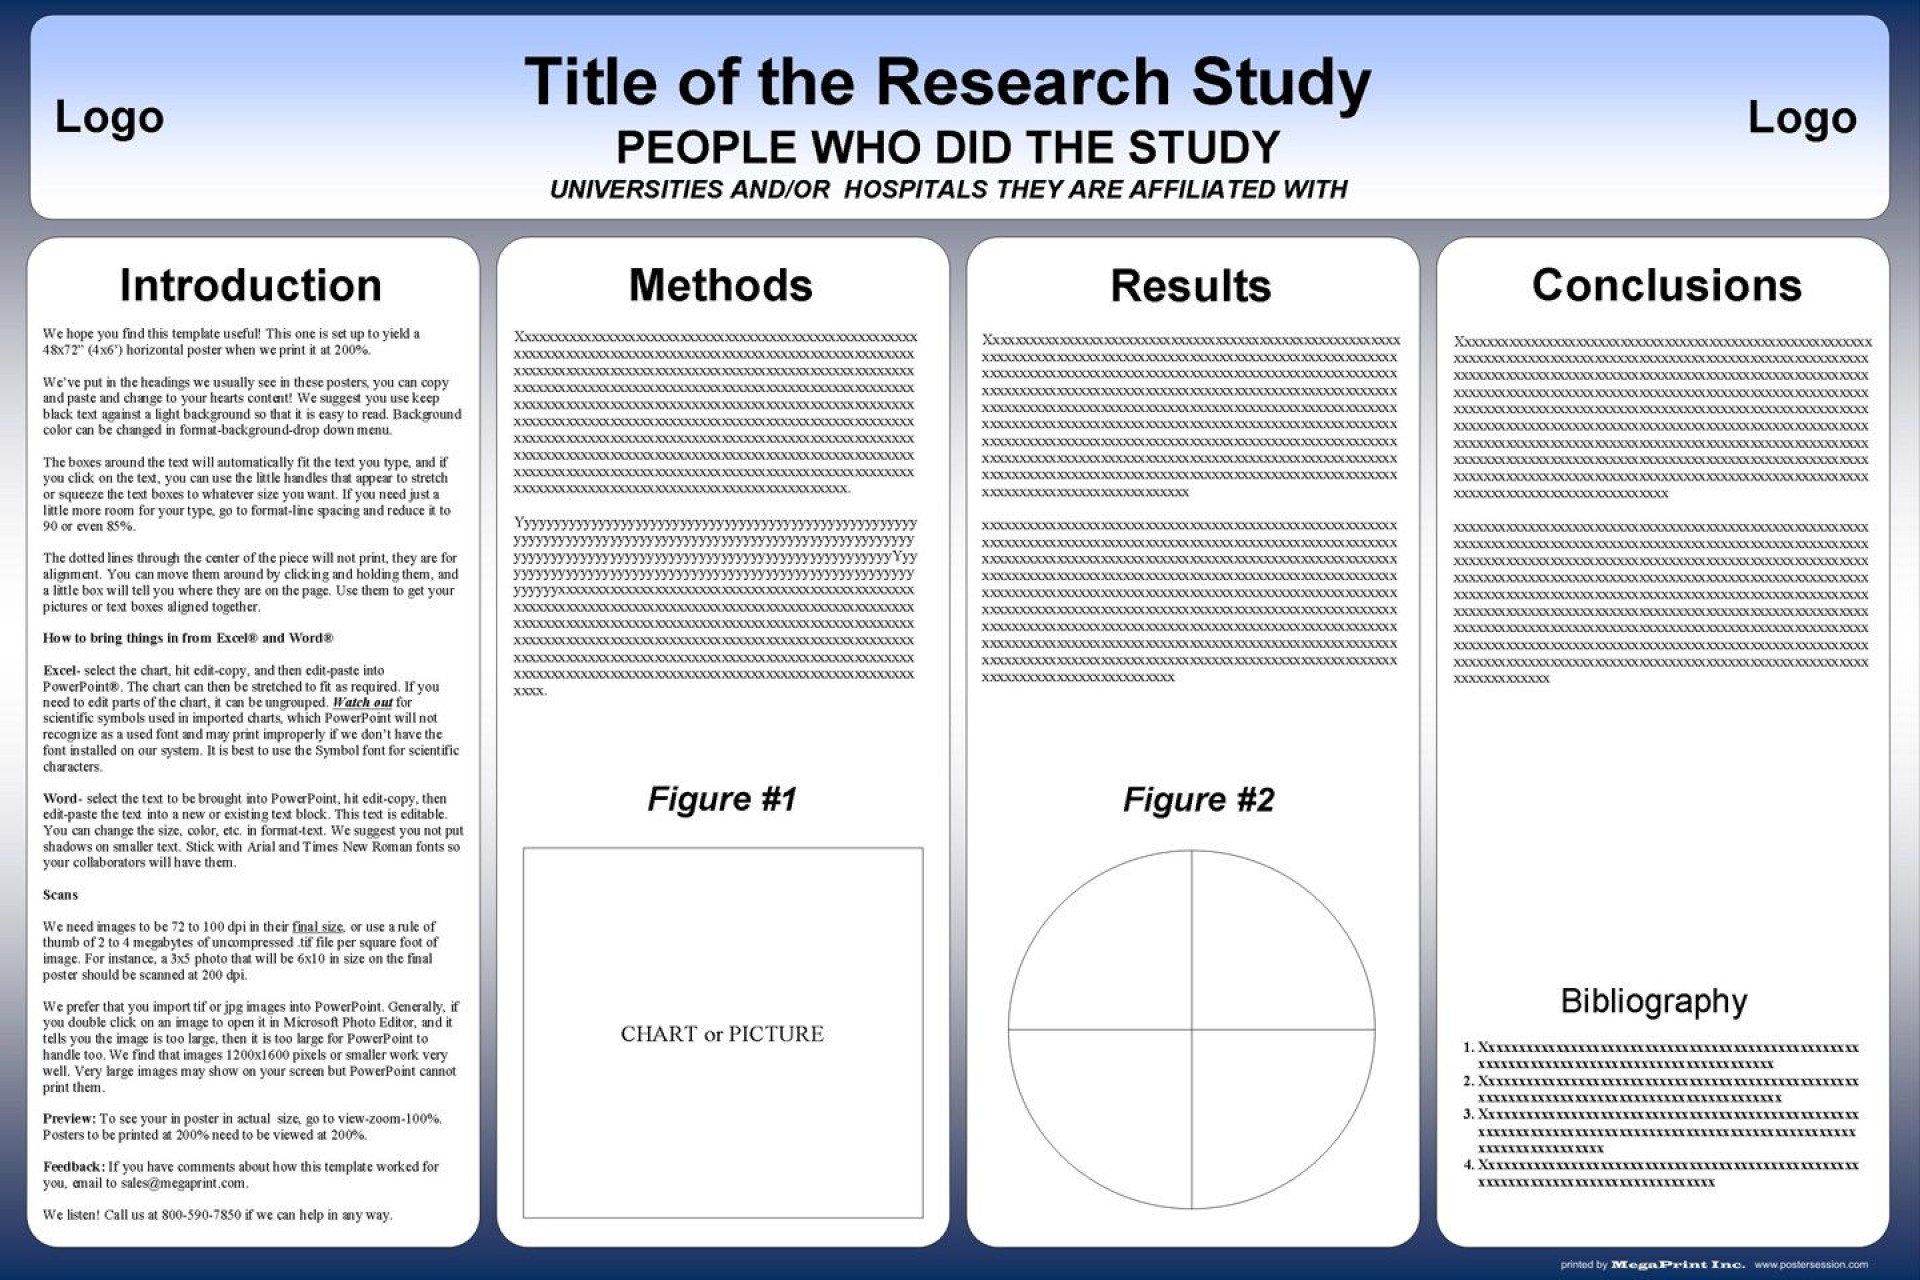 002 Surprising Scientific Poster Template Free Download Example  A1 Creative1920